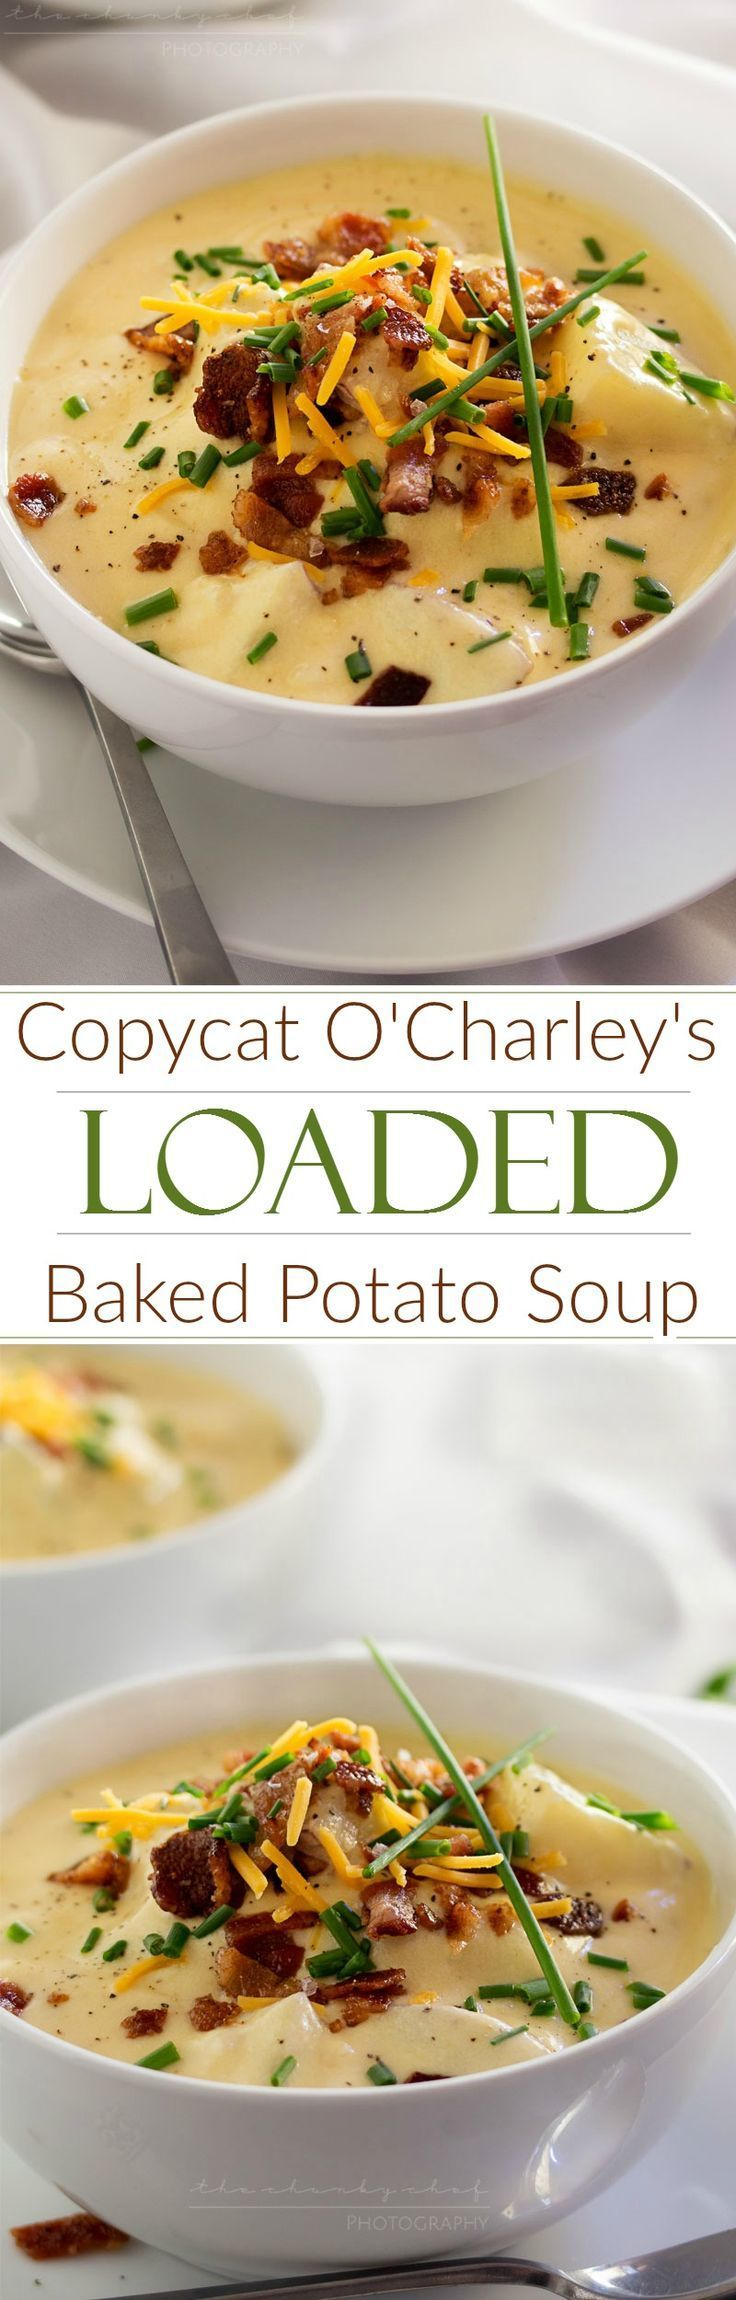 Copycat Loaded Baked Potato Soup | Creamy and thick, this potato soup is topped with savory cheese, fresh chives and crumbled bacon. It tastes just like O'Charley's loaded baked potato soup!